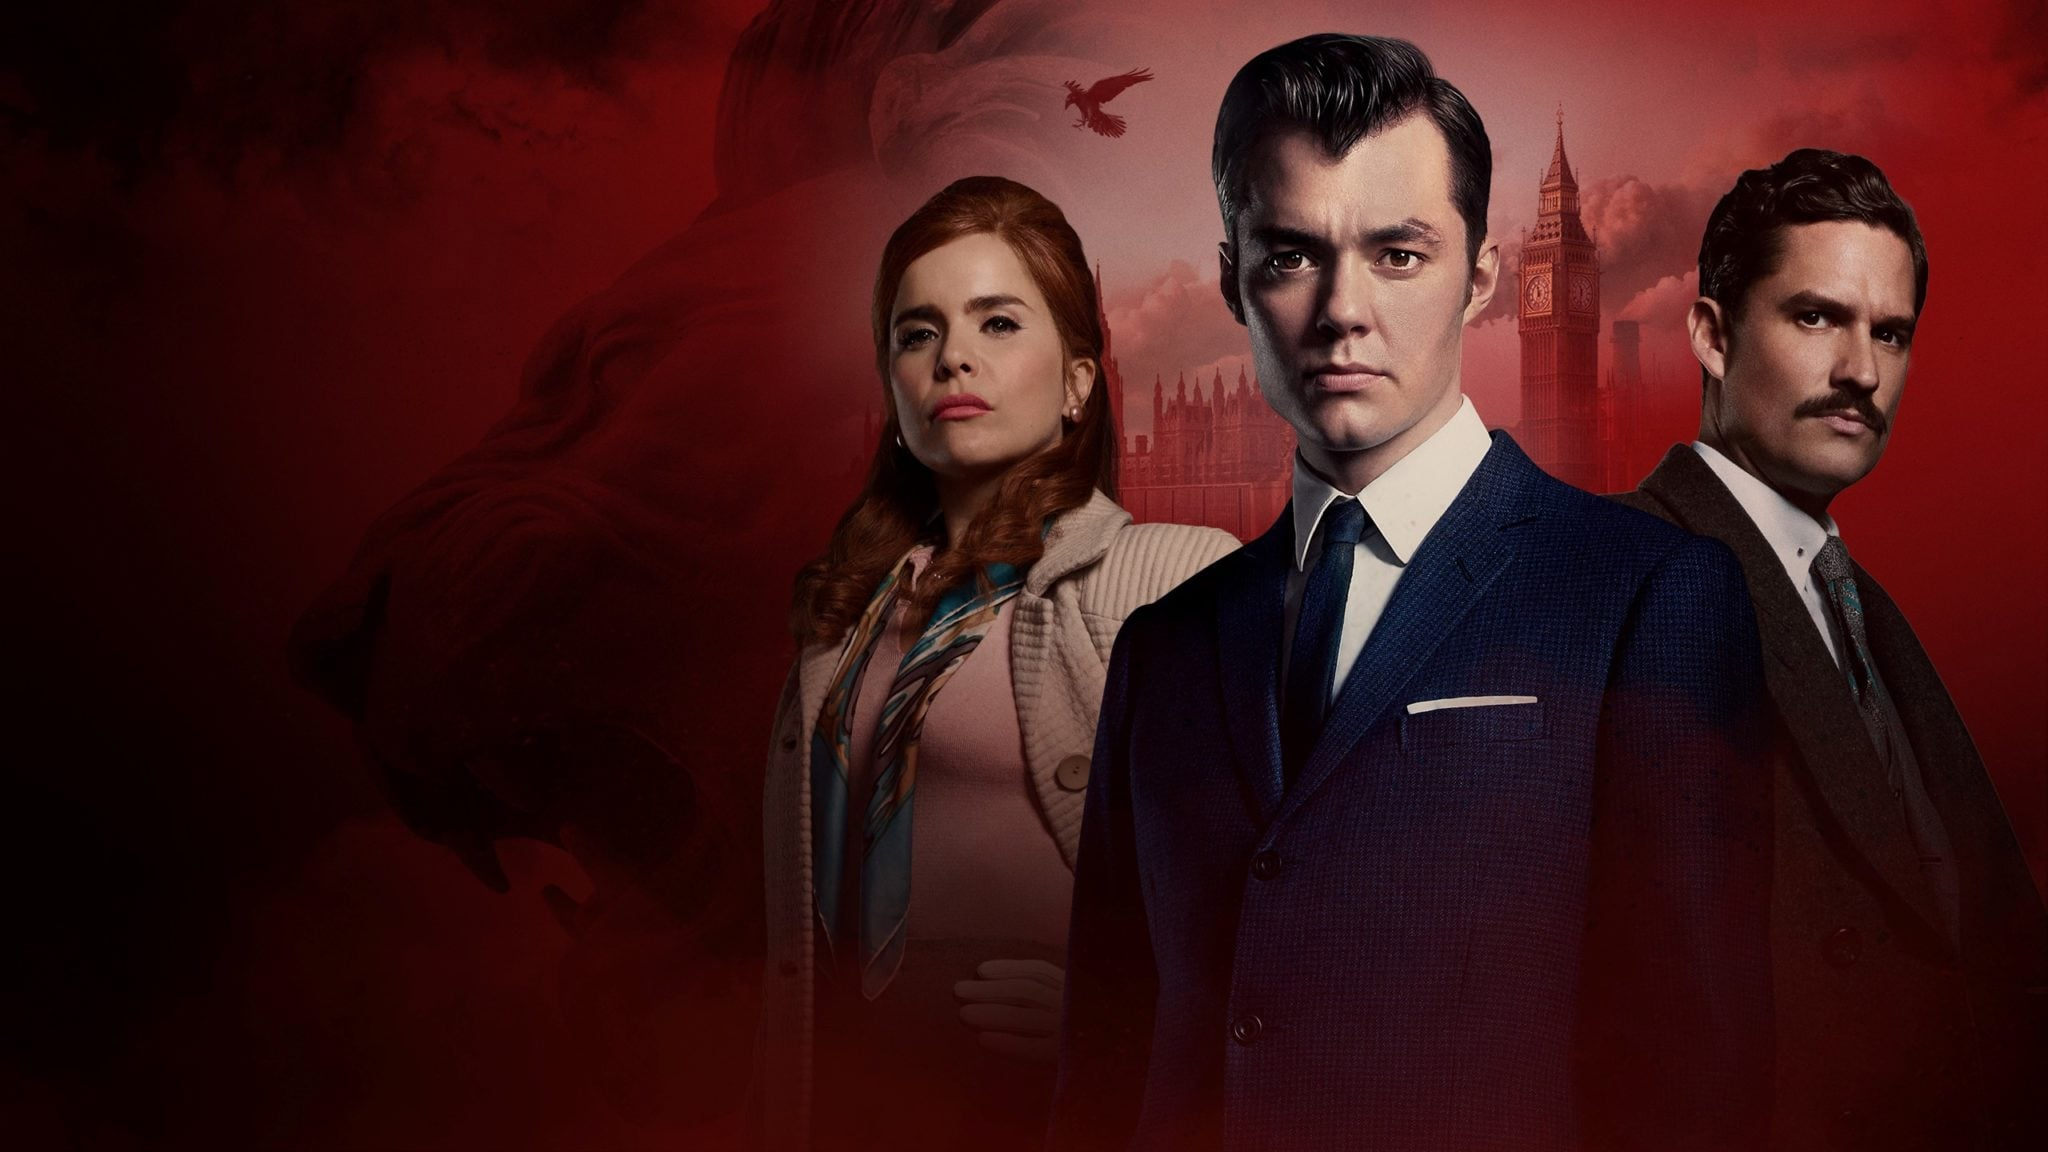 Second season Pennyworth could premiere in December